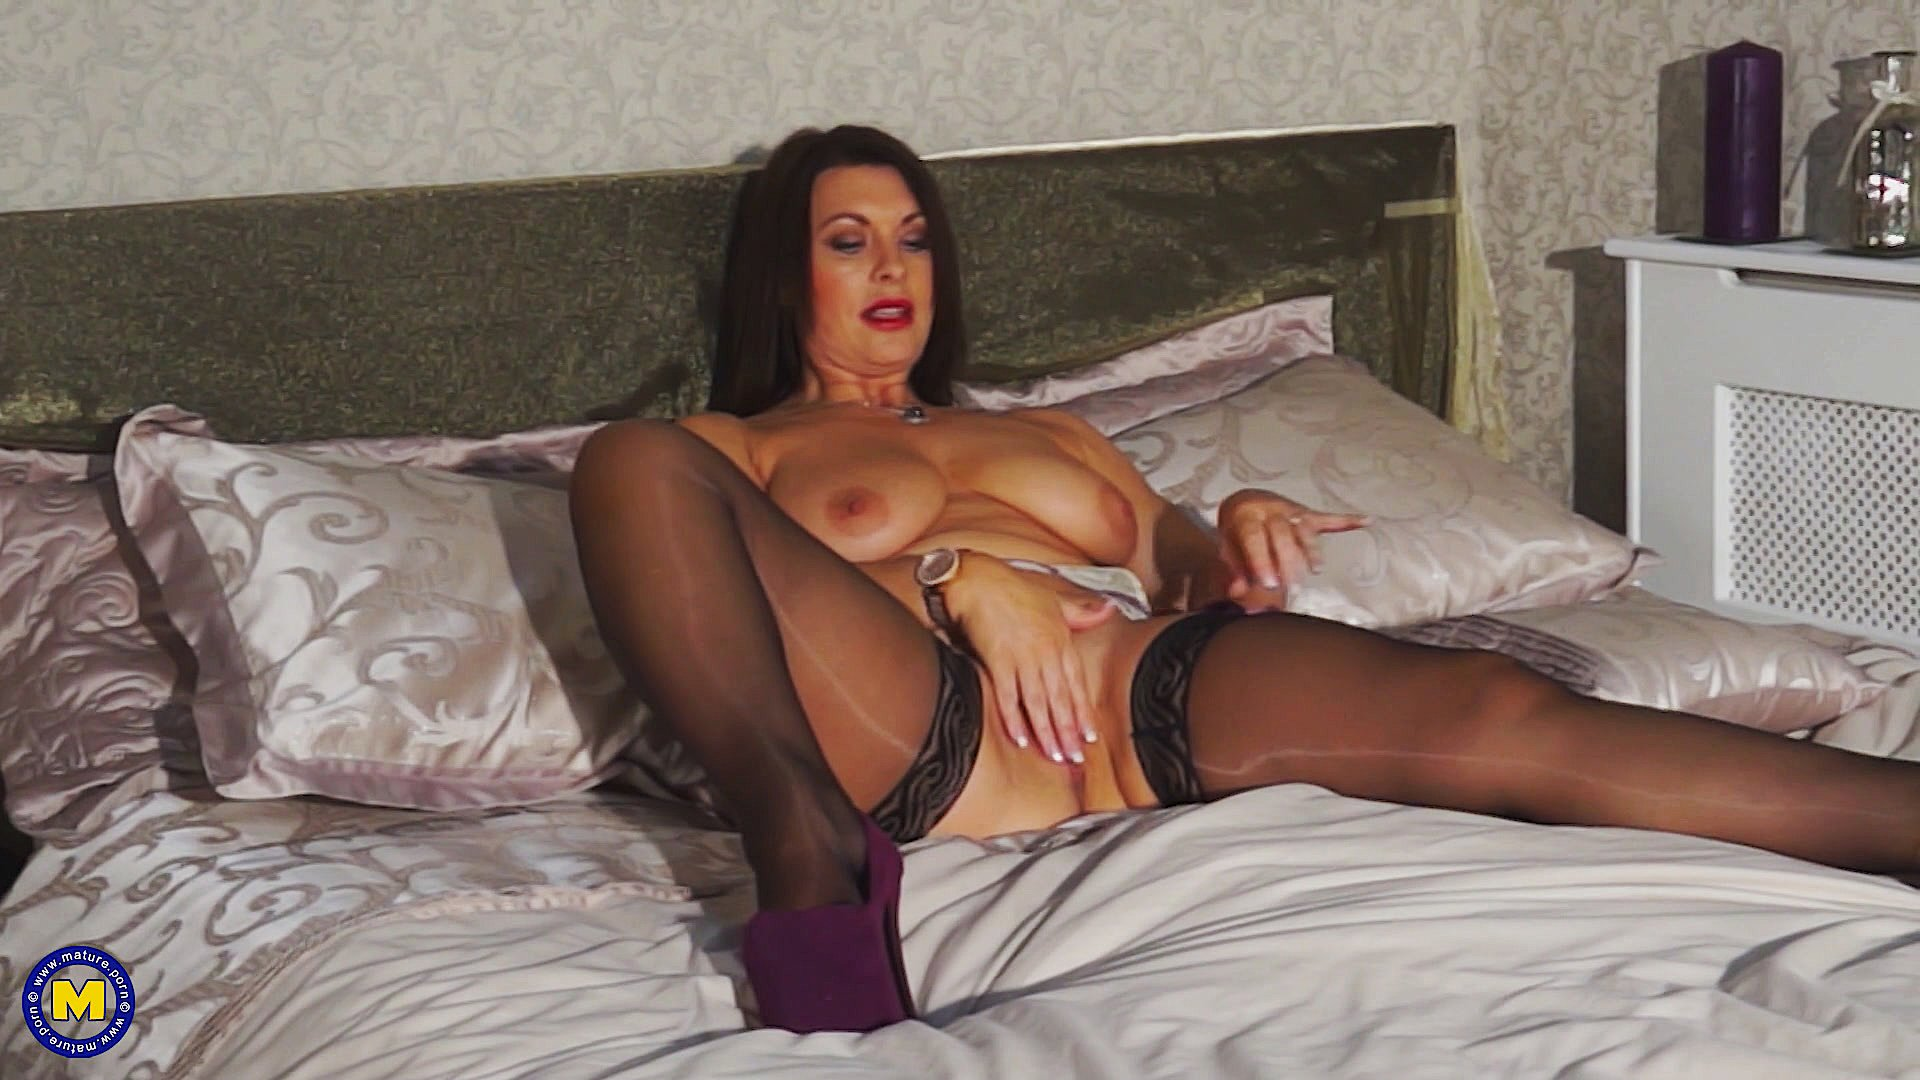 Shared curvy shaved lingerie